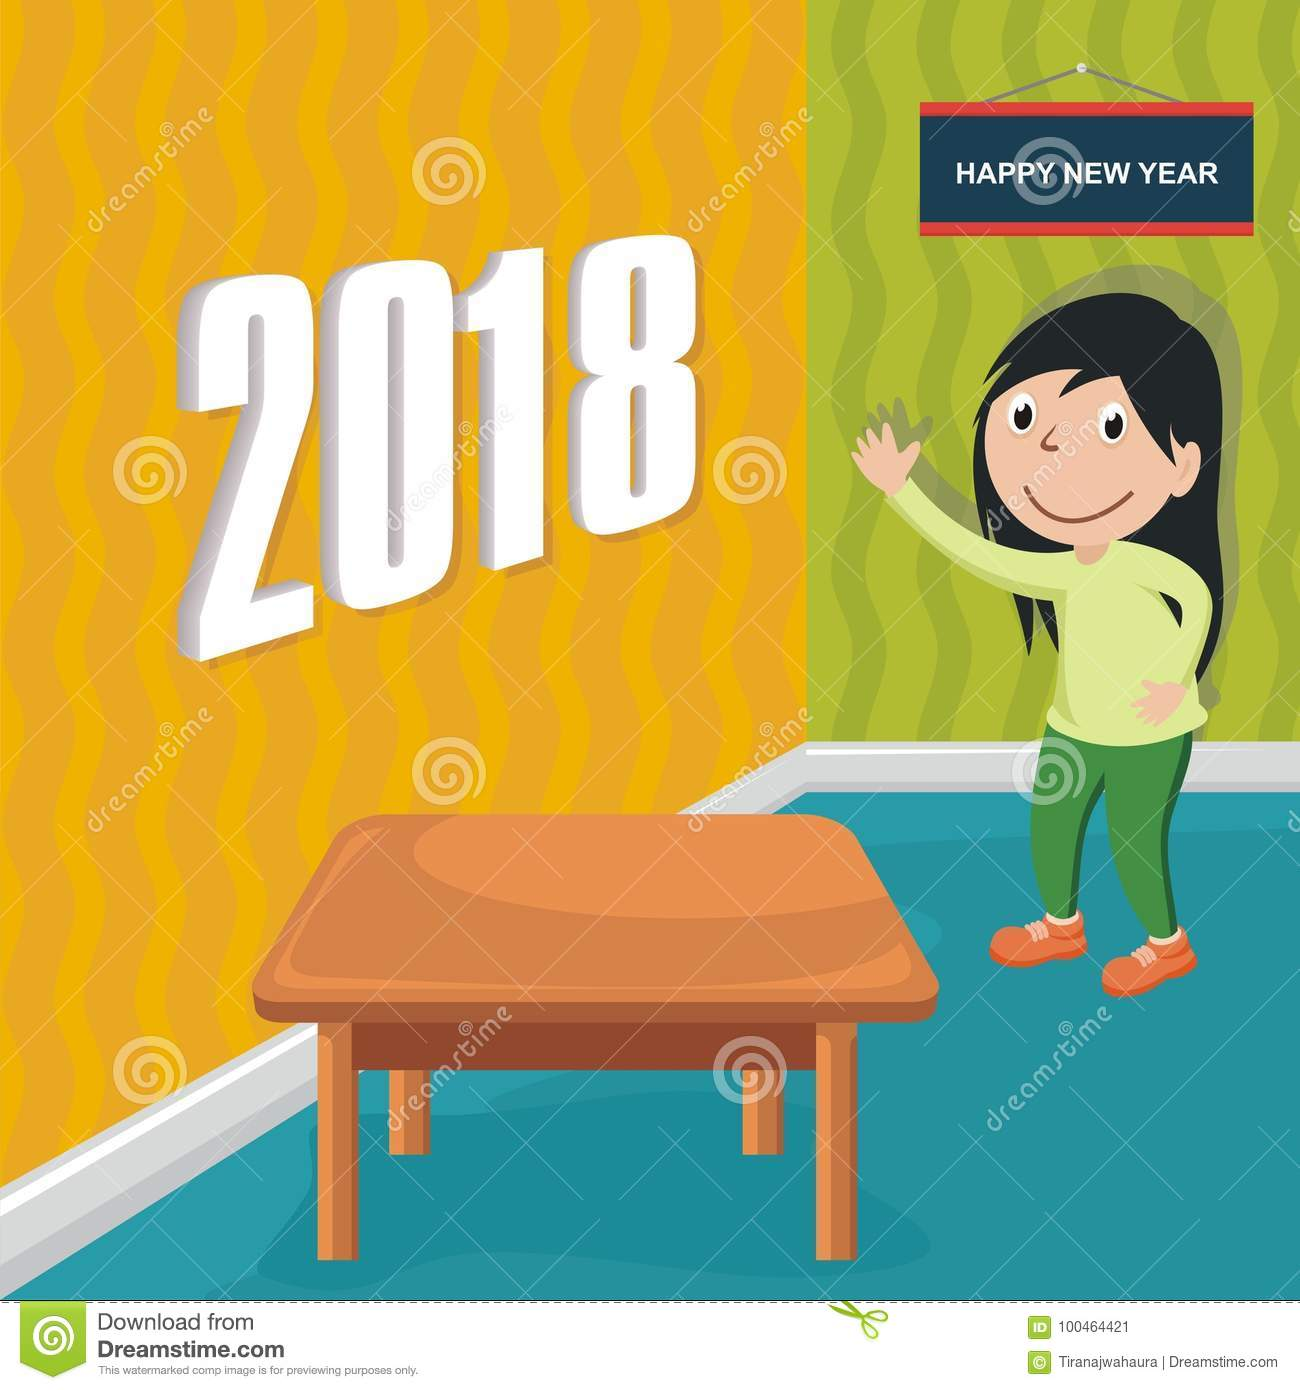 happy new year 2018 with cartoon design